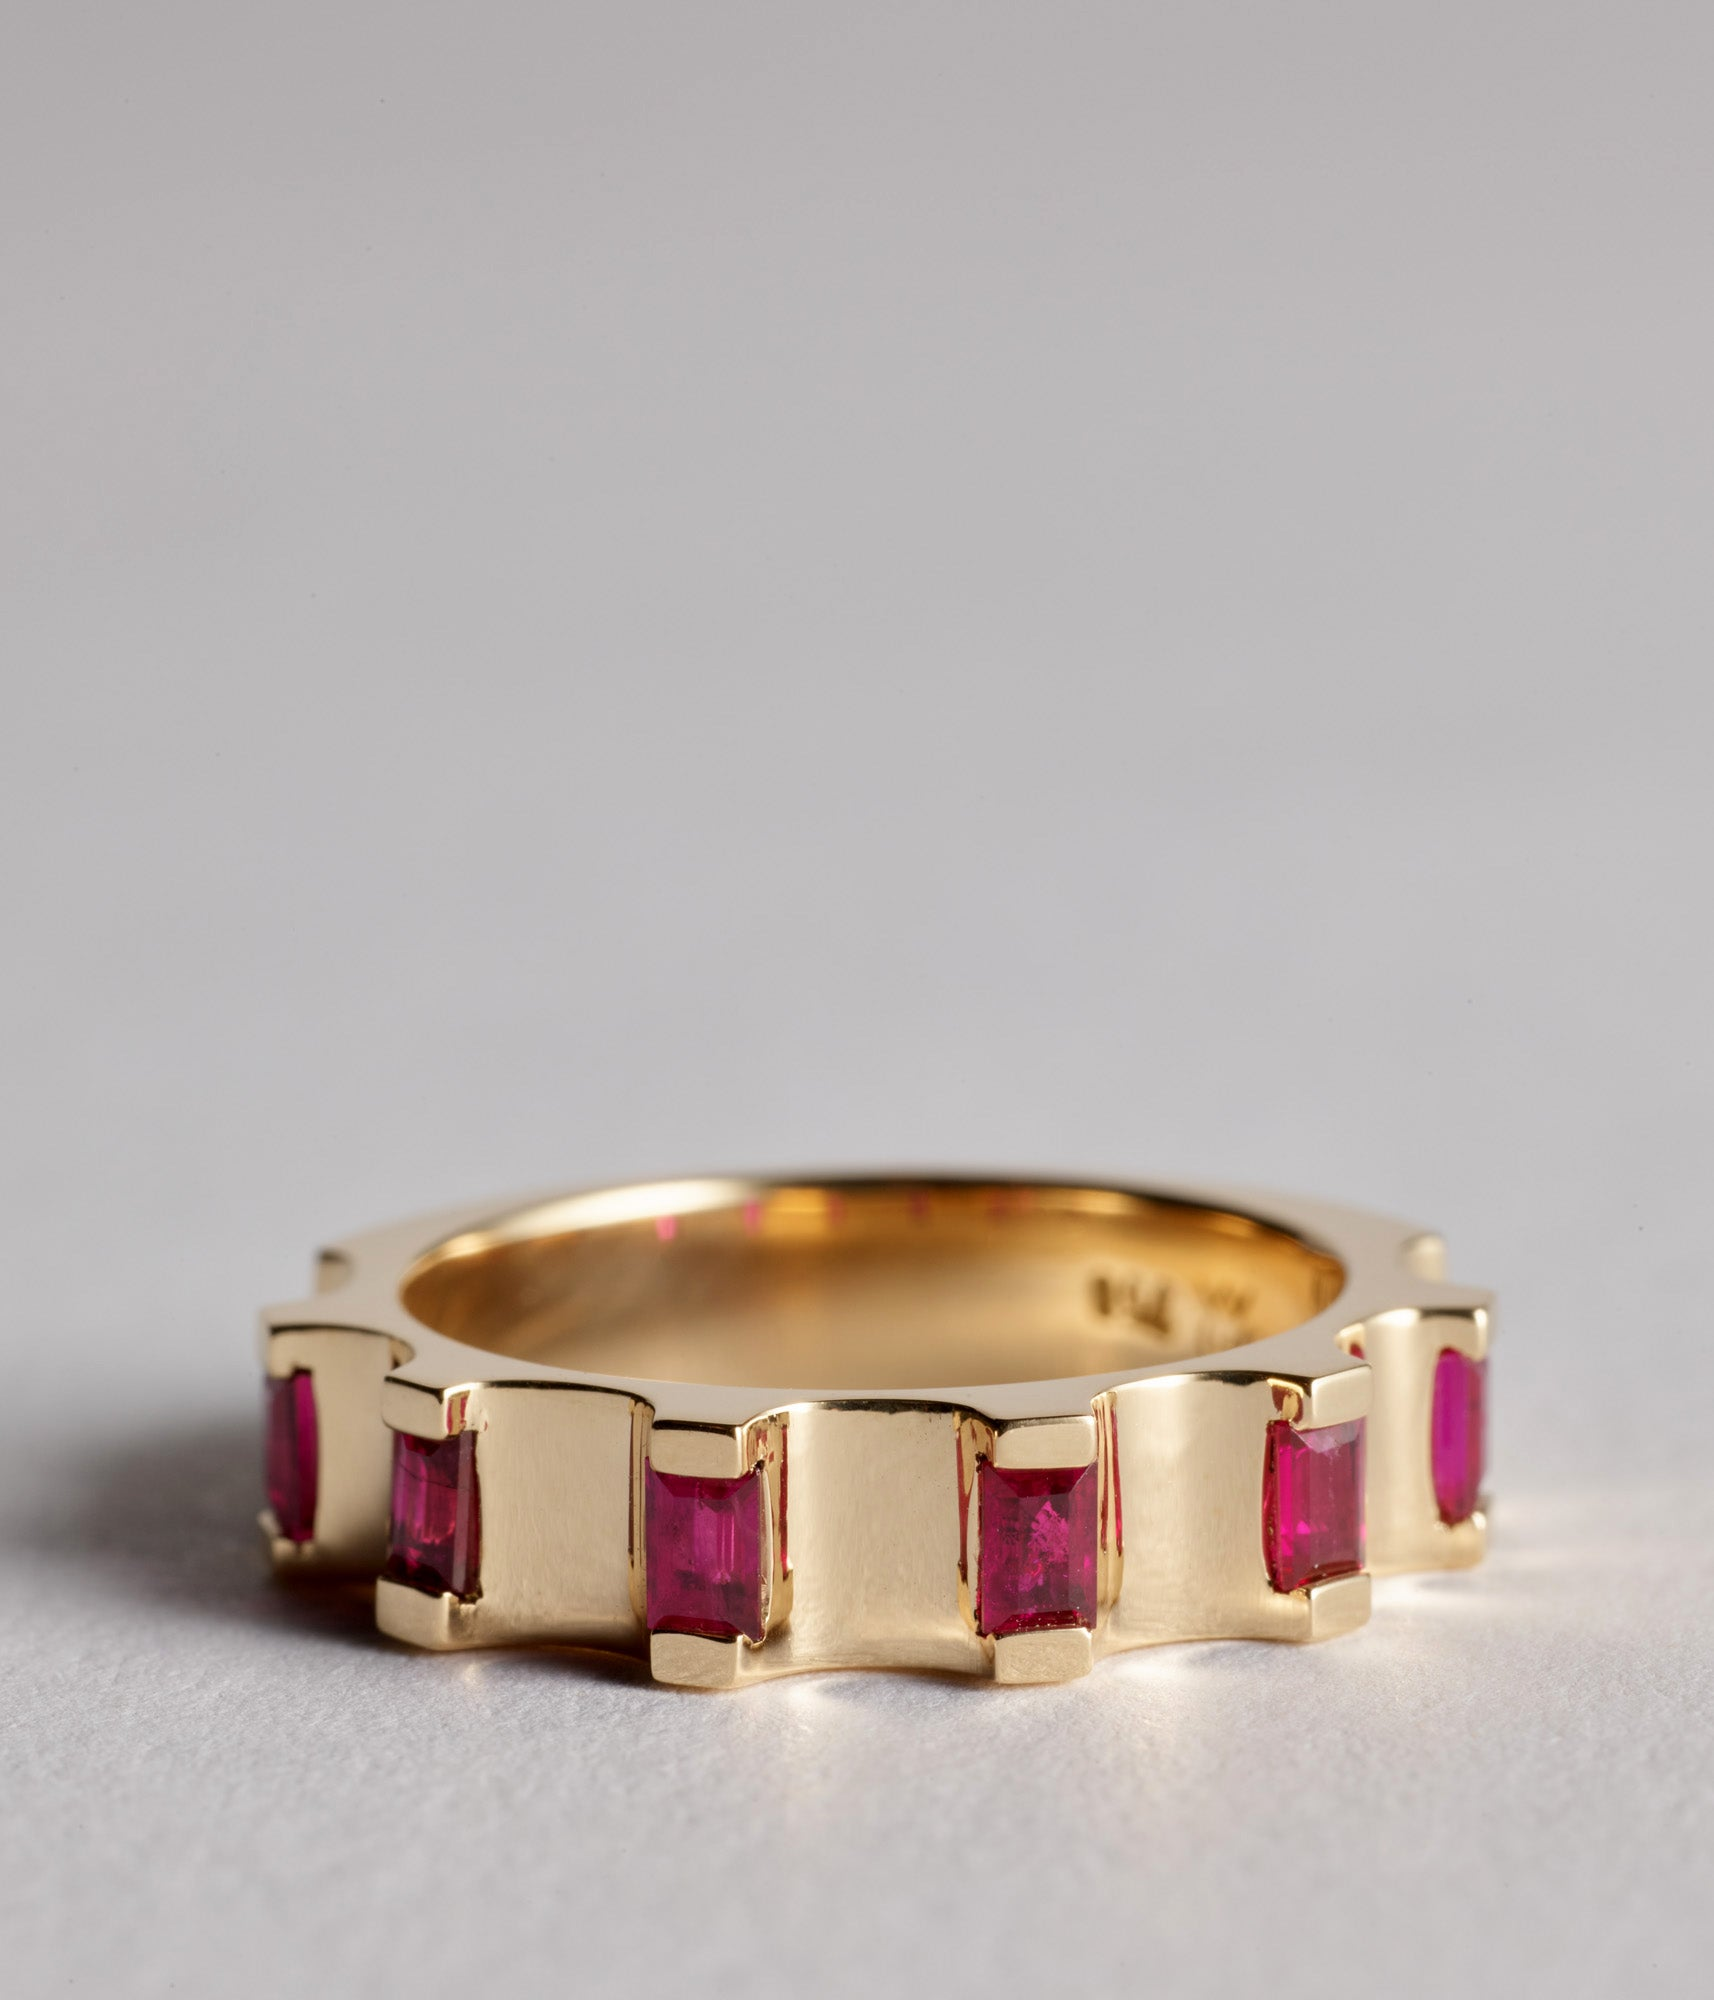 Parmentier ring - 18ct Ruby